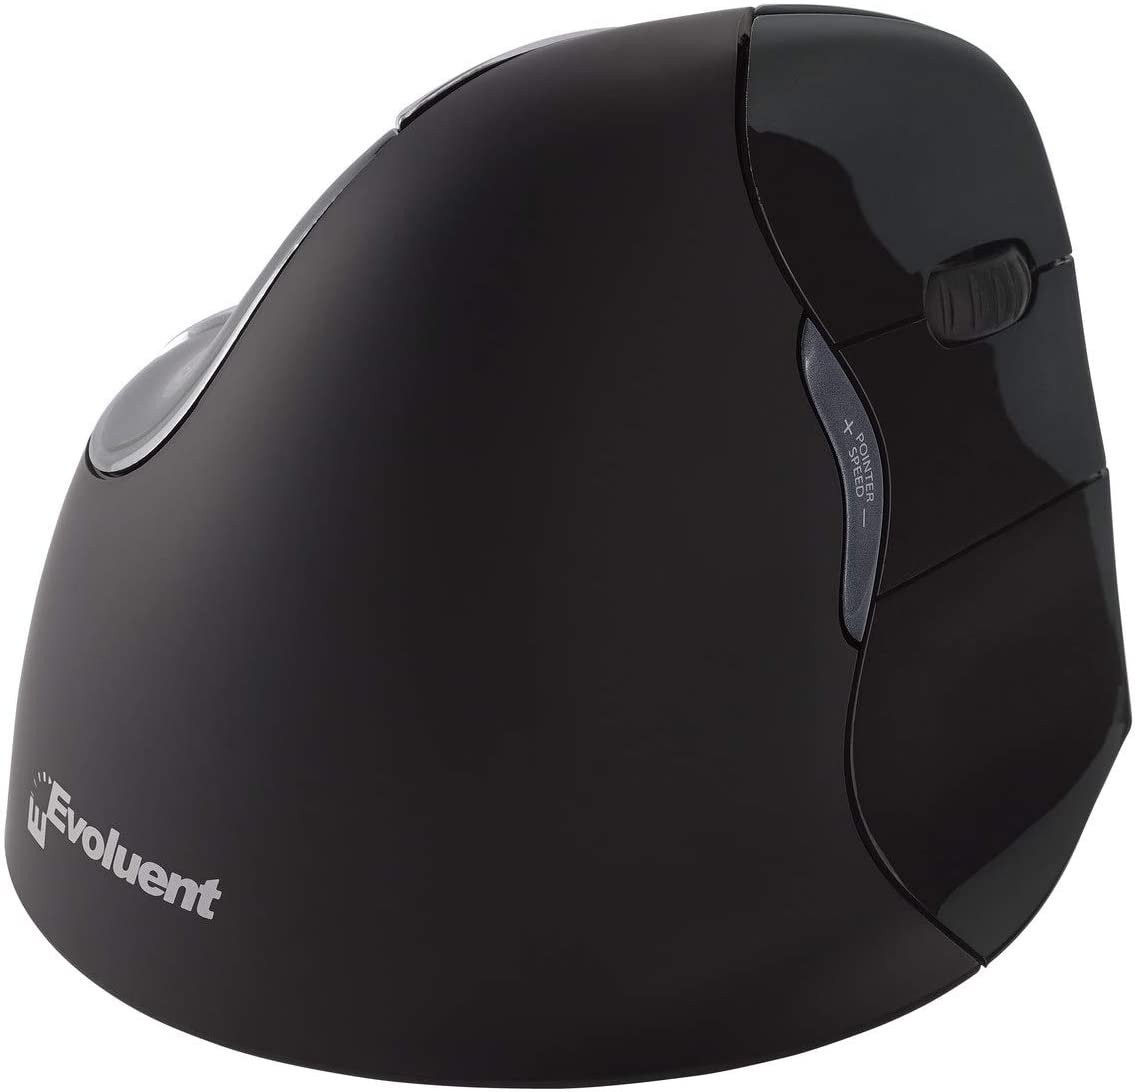 Evoluent VM4RM VerticalMouse 4 Right Hand Ergonomic Mouse with Bluetooth Connection for Mac OS (Regular Size)